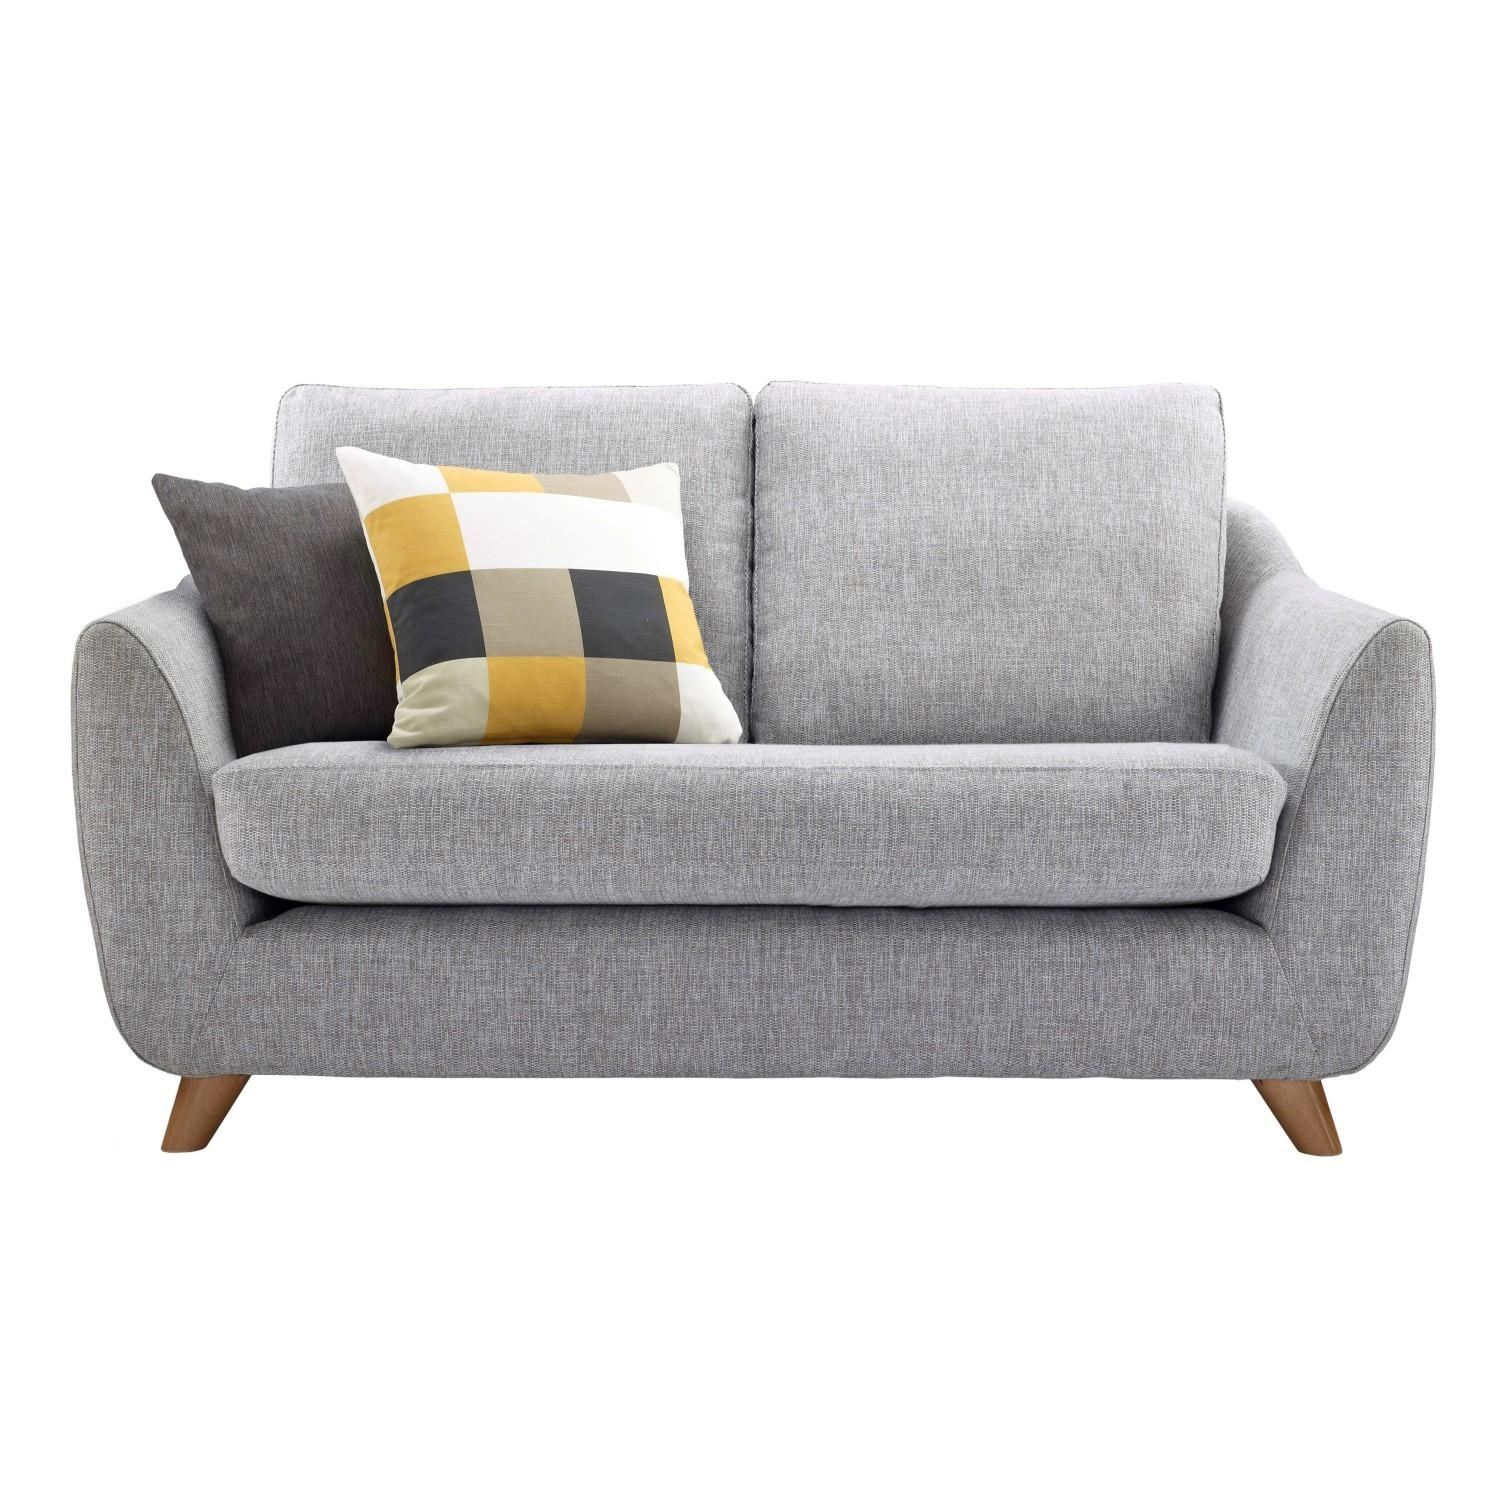 Sofas Center : Stirring Smallnal Sofa Images Ideas Charcoal Wyatt With Small Scale Sofa Bed (View 7 of 20)